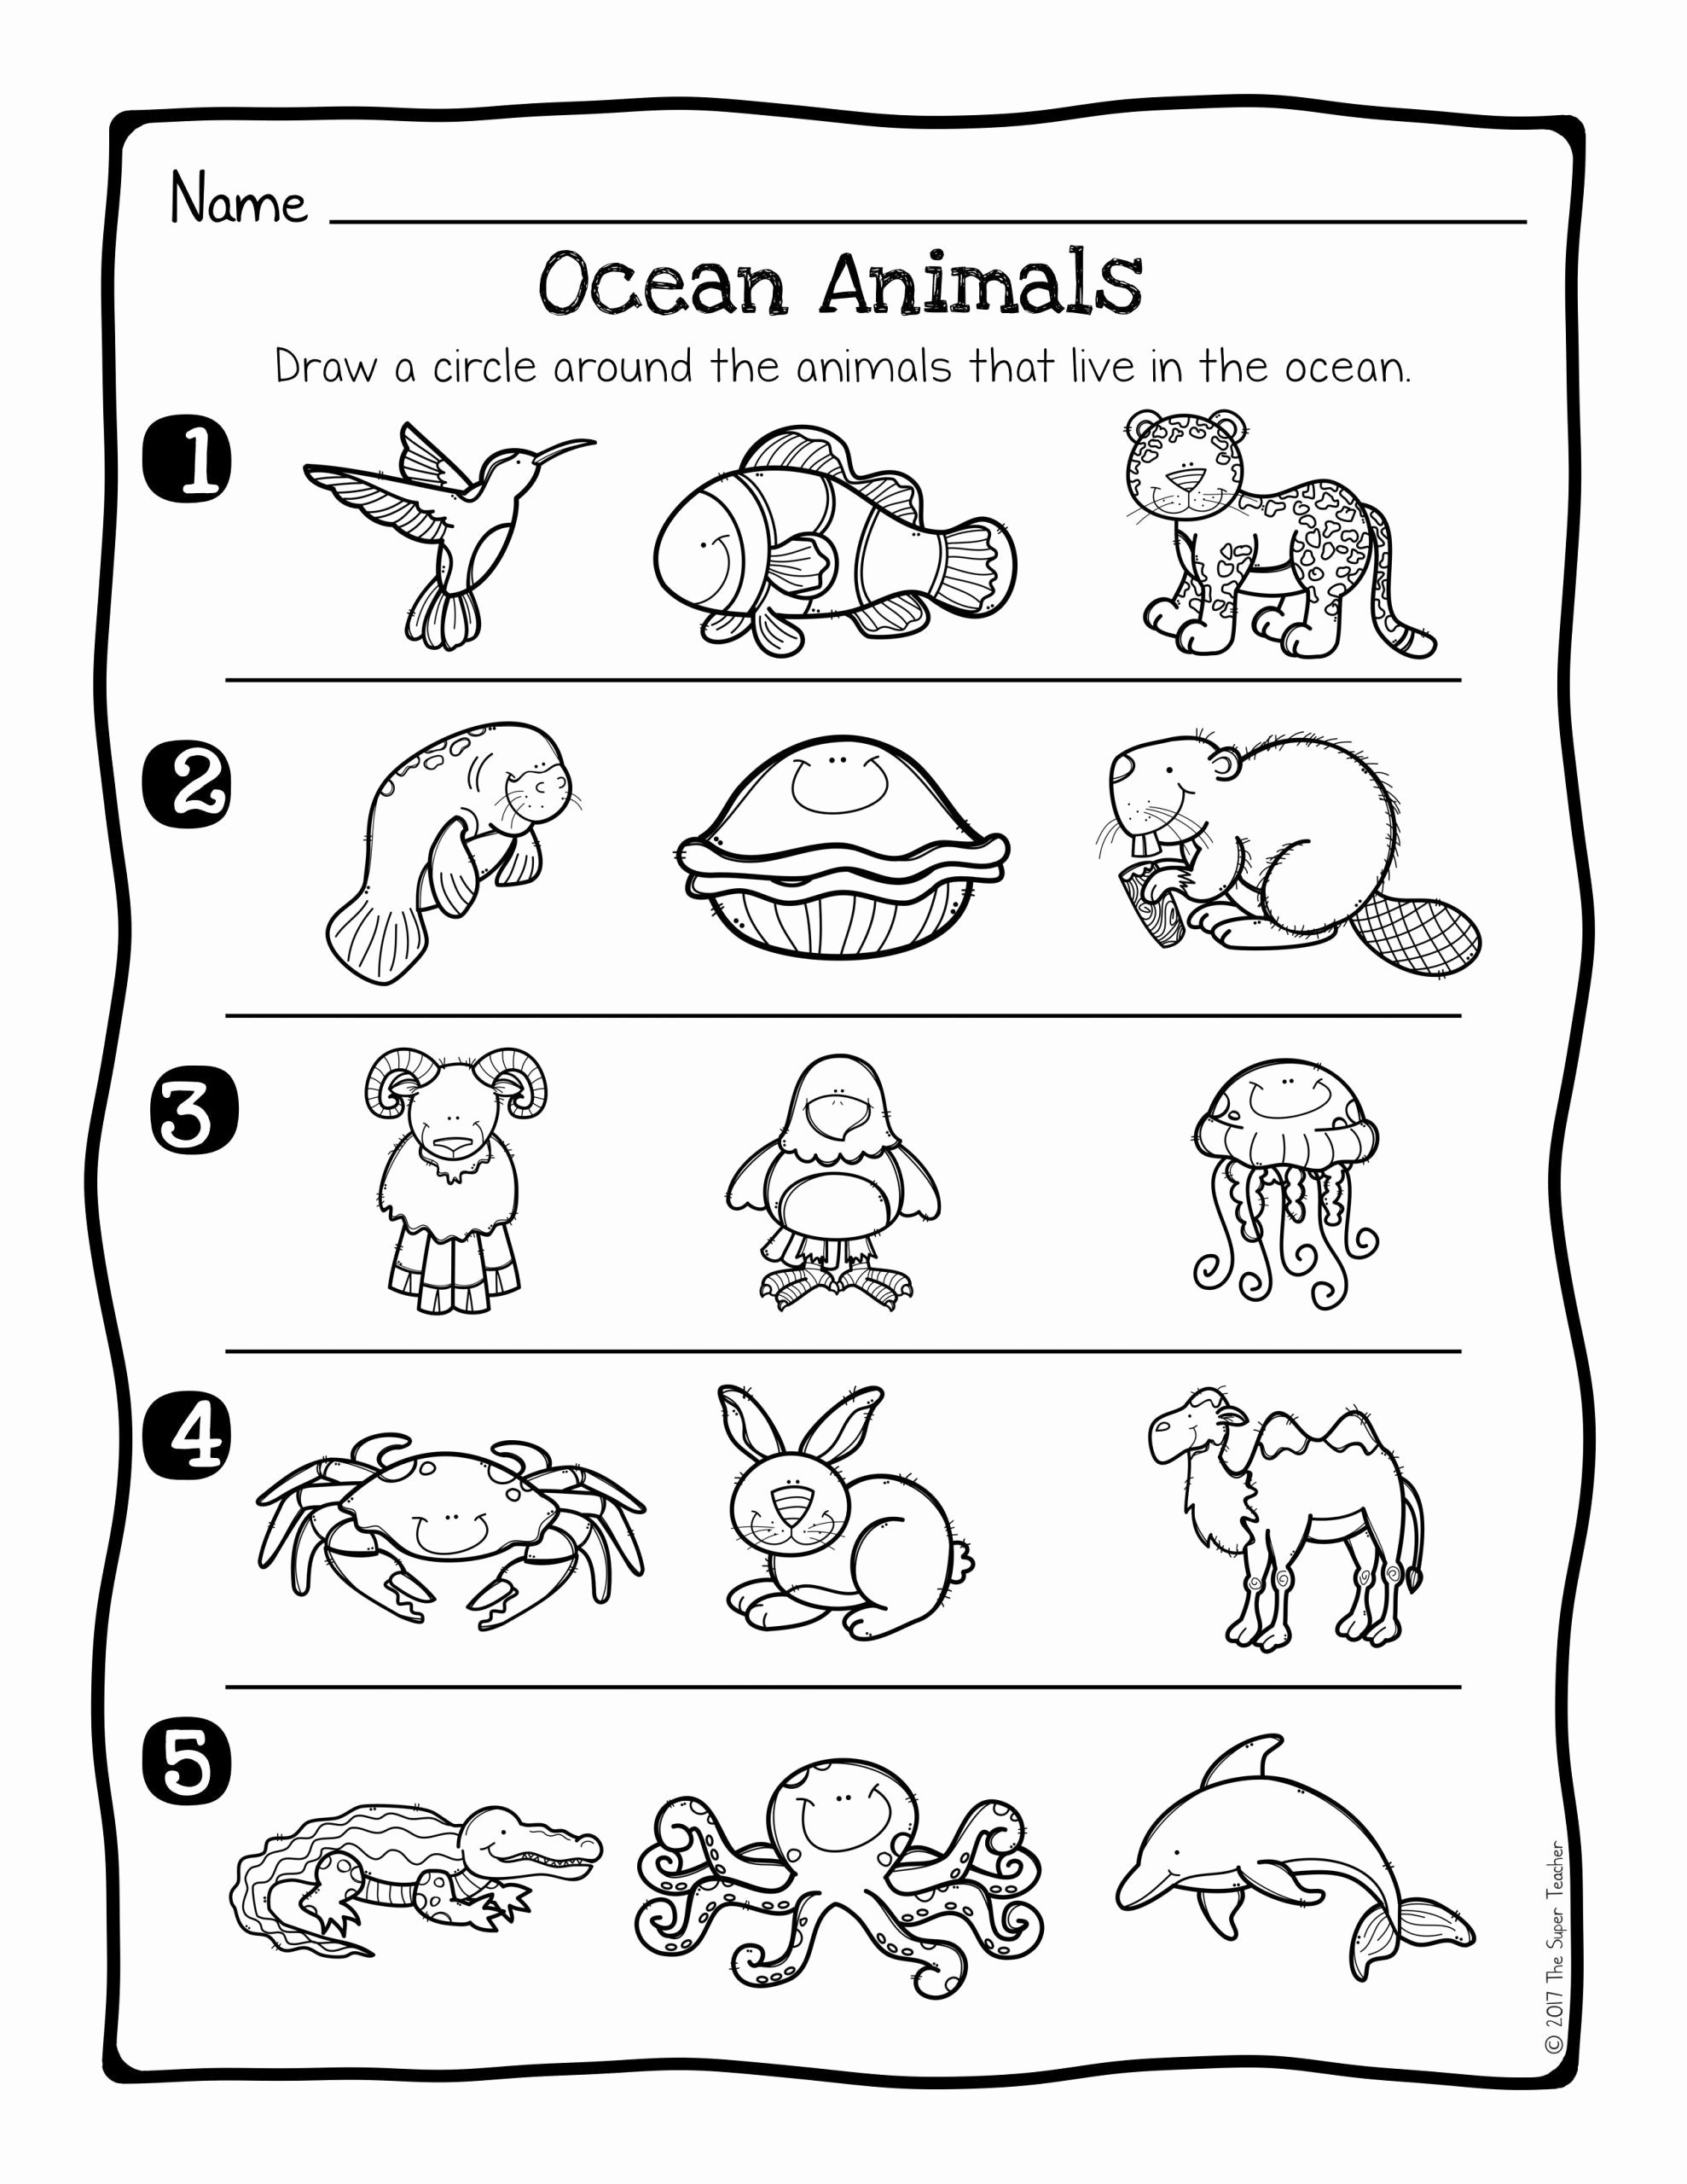 Sea Creatures Worksheets For Preschoolers